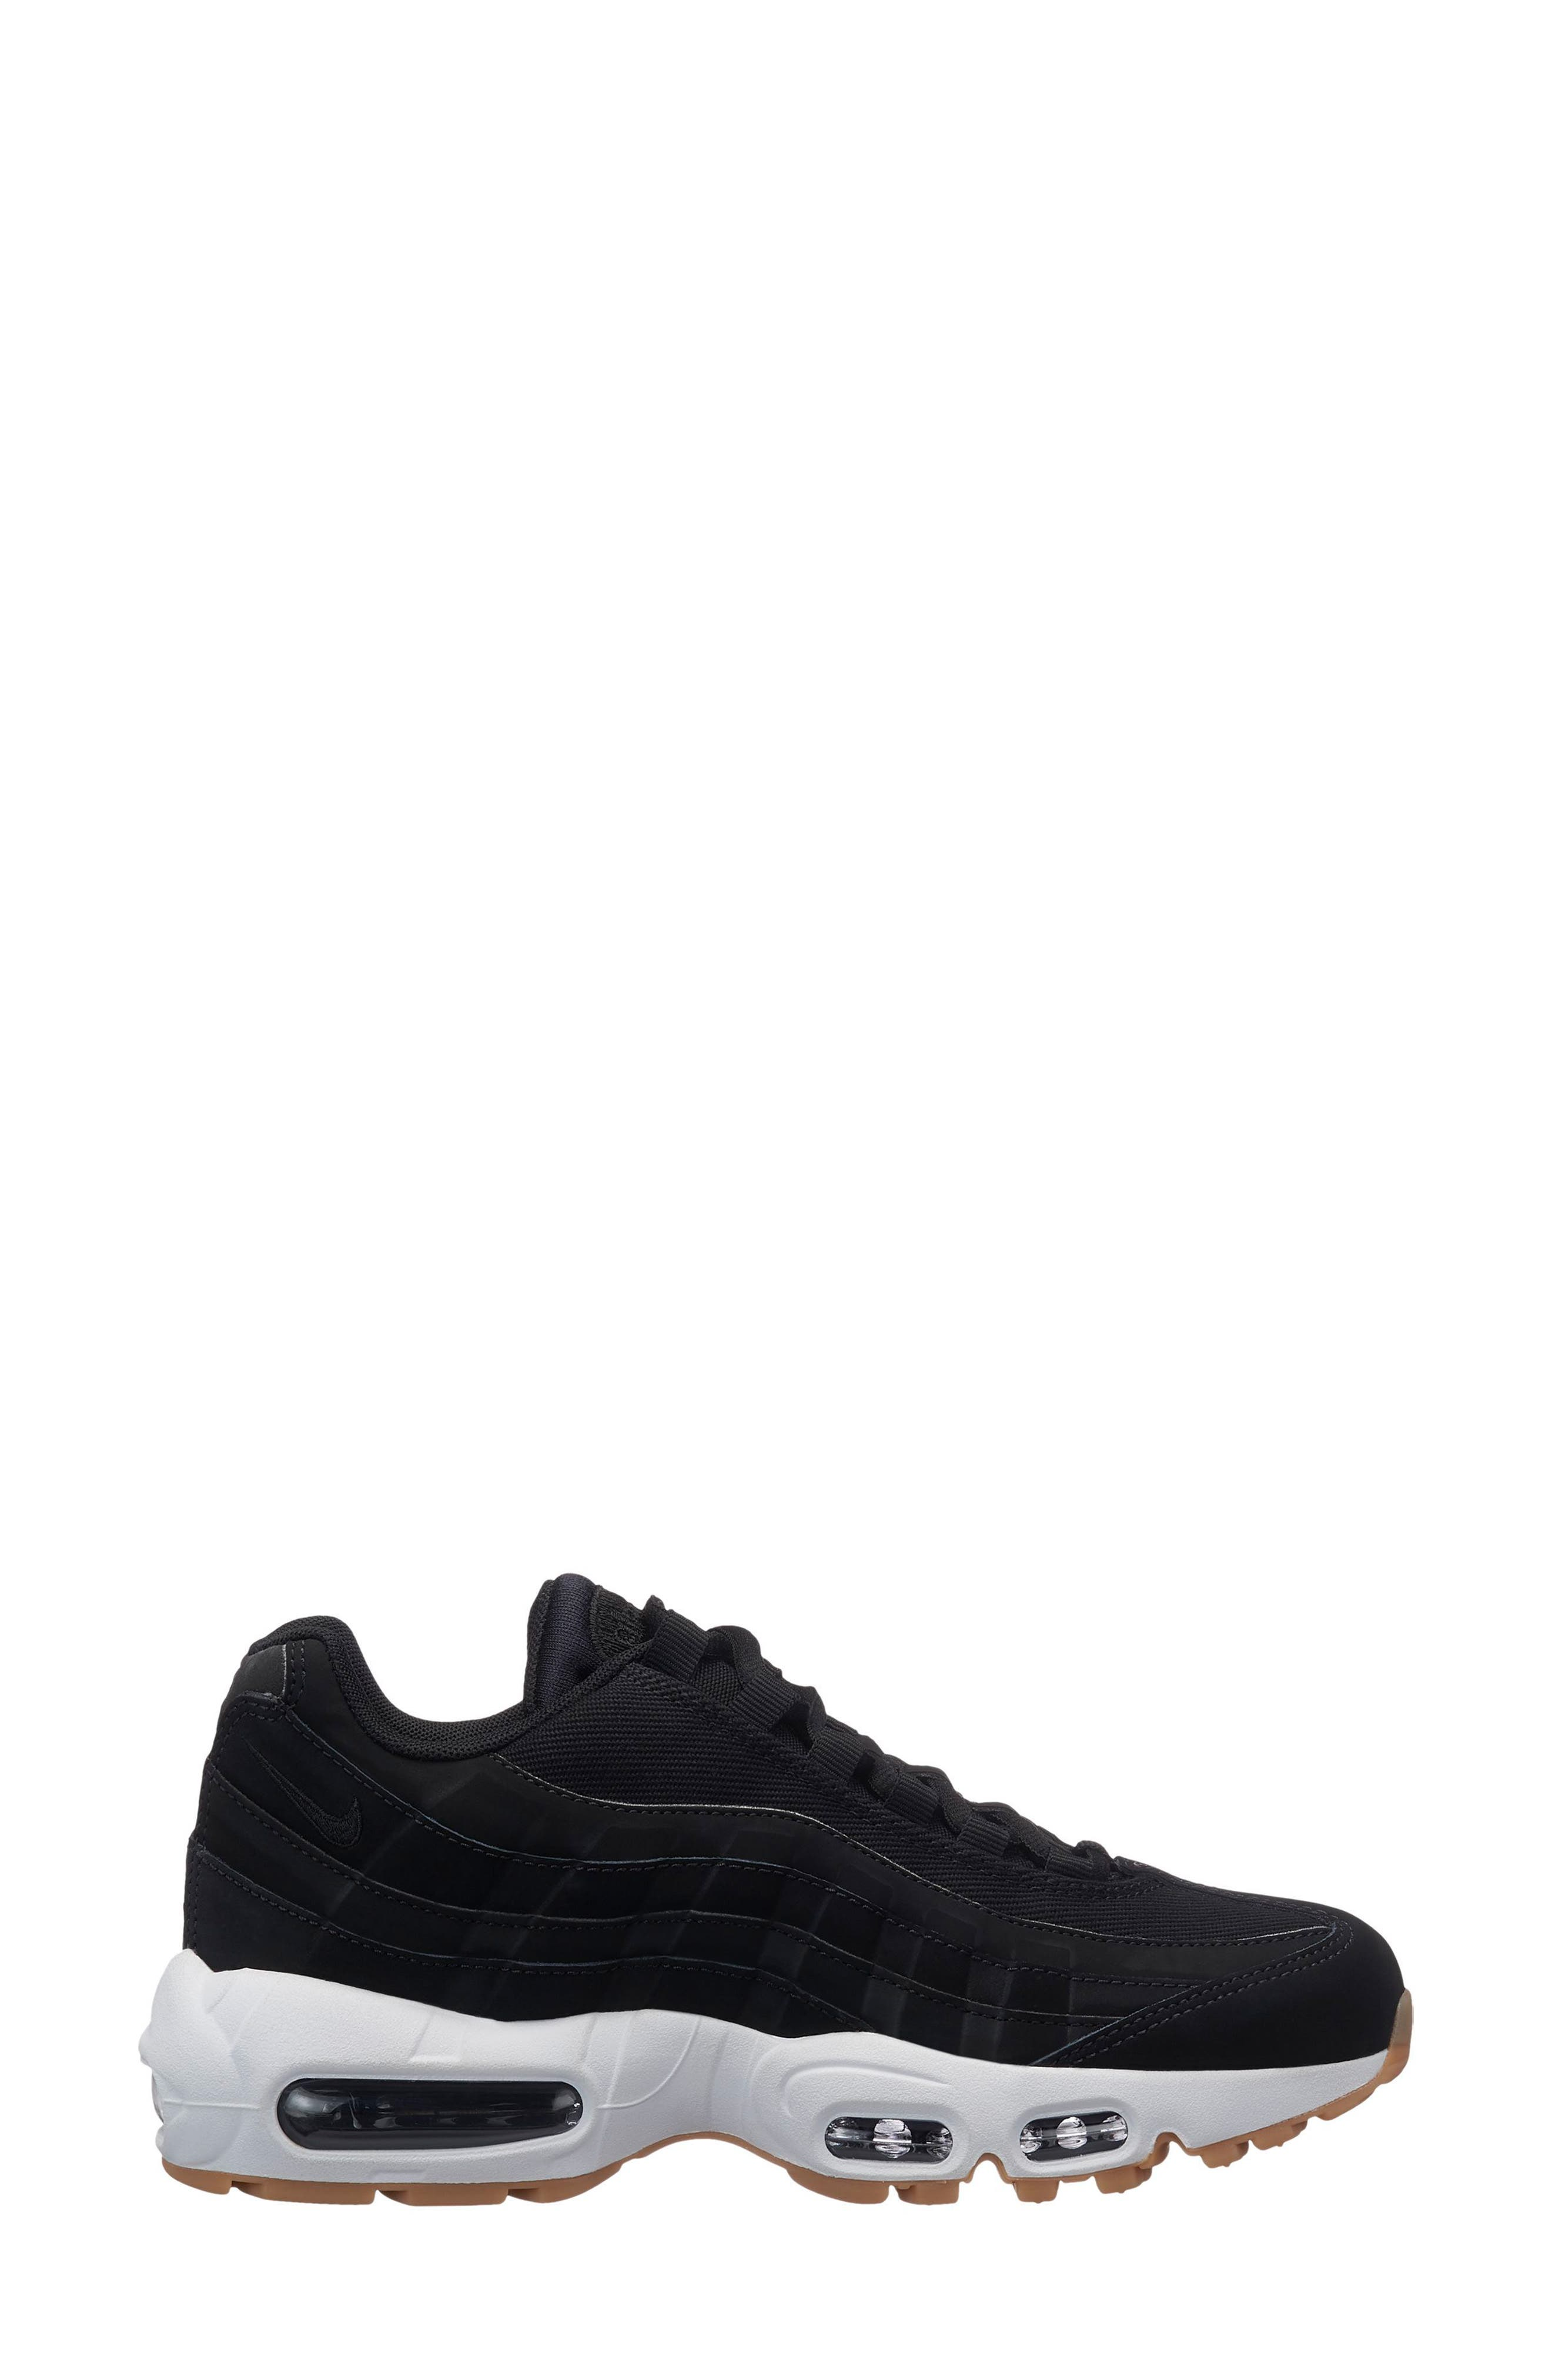 Air Max 95 Running Shoe,                         Main,                         color, Black